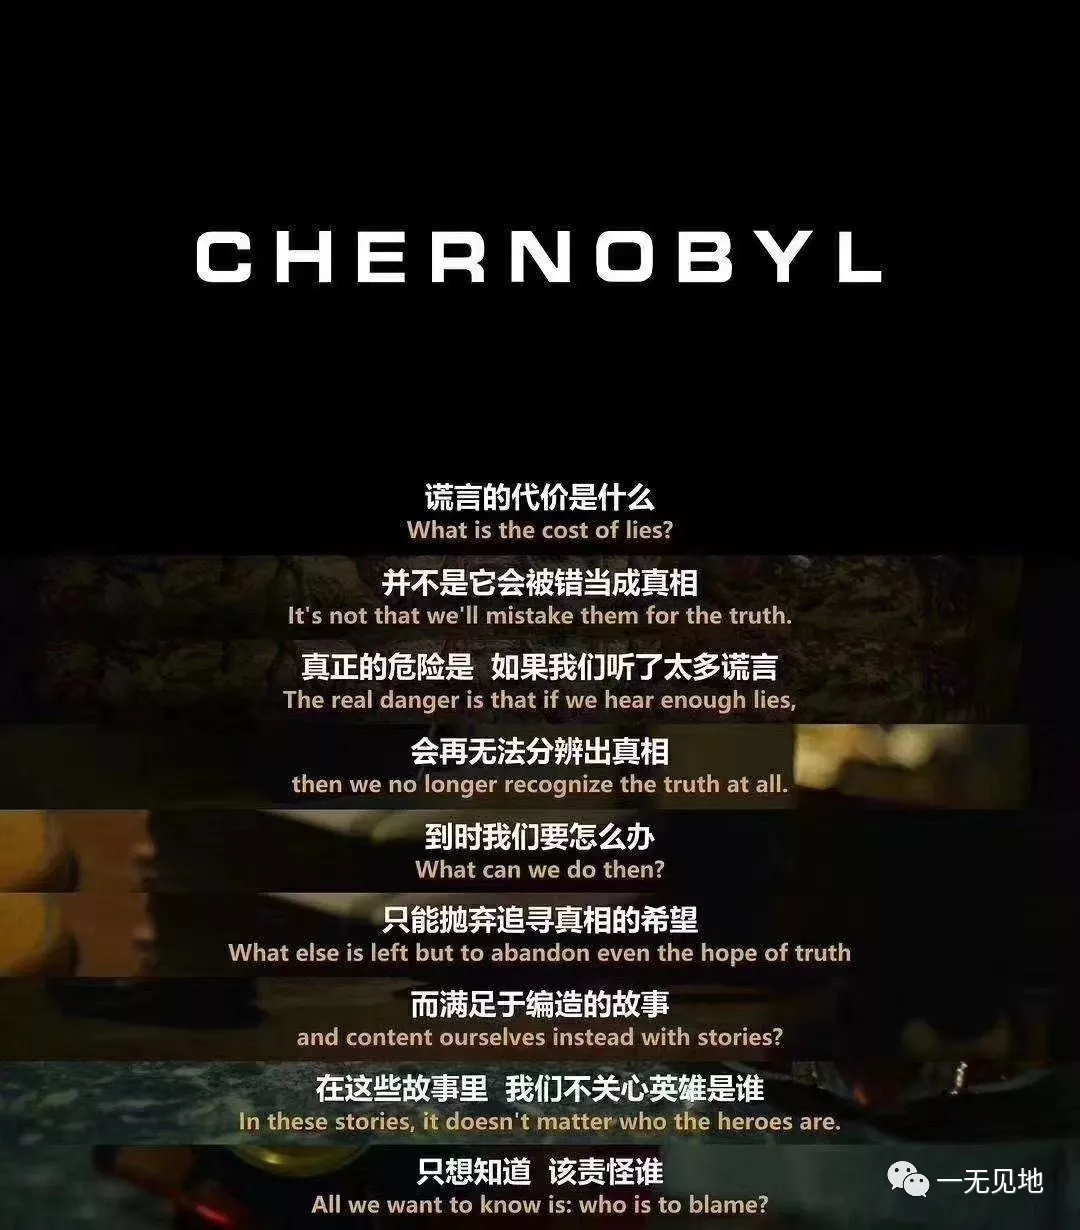 """A quote from chemist Valery Legasov, from the show """"Chernobyl,"""" was shared on WeChat in tribute to Li Wenliang."""